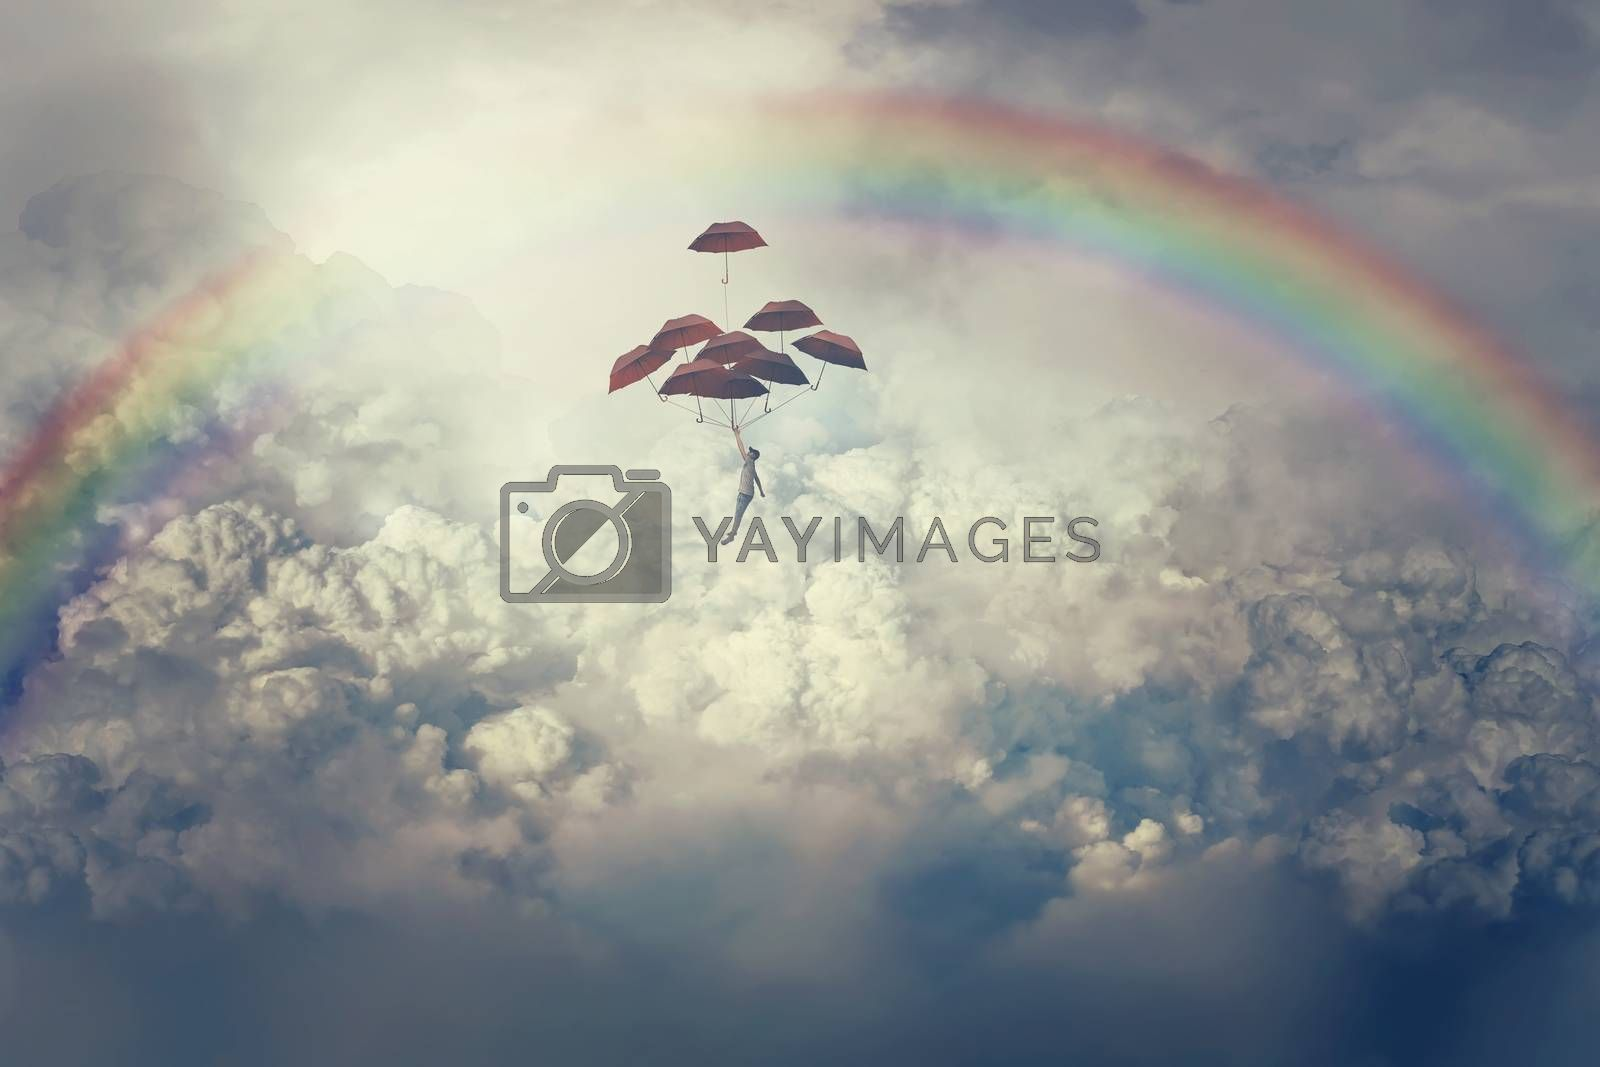 Imaginary view with a young boy flying above clouds holding a lot of umbrellas. Life journey below a rainbow in the sky.